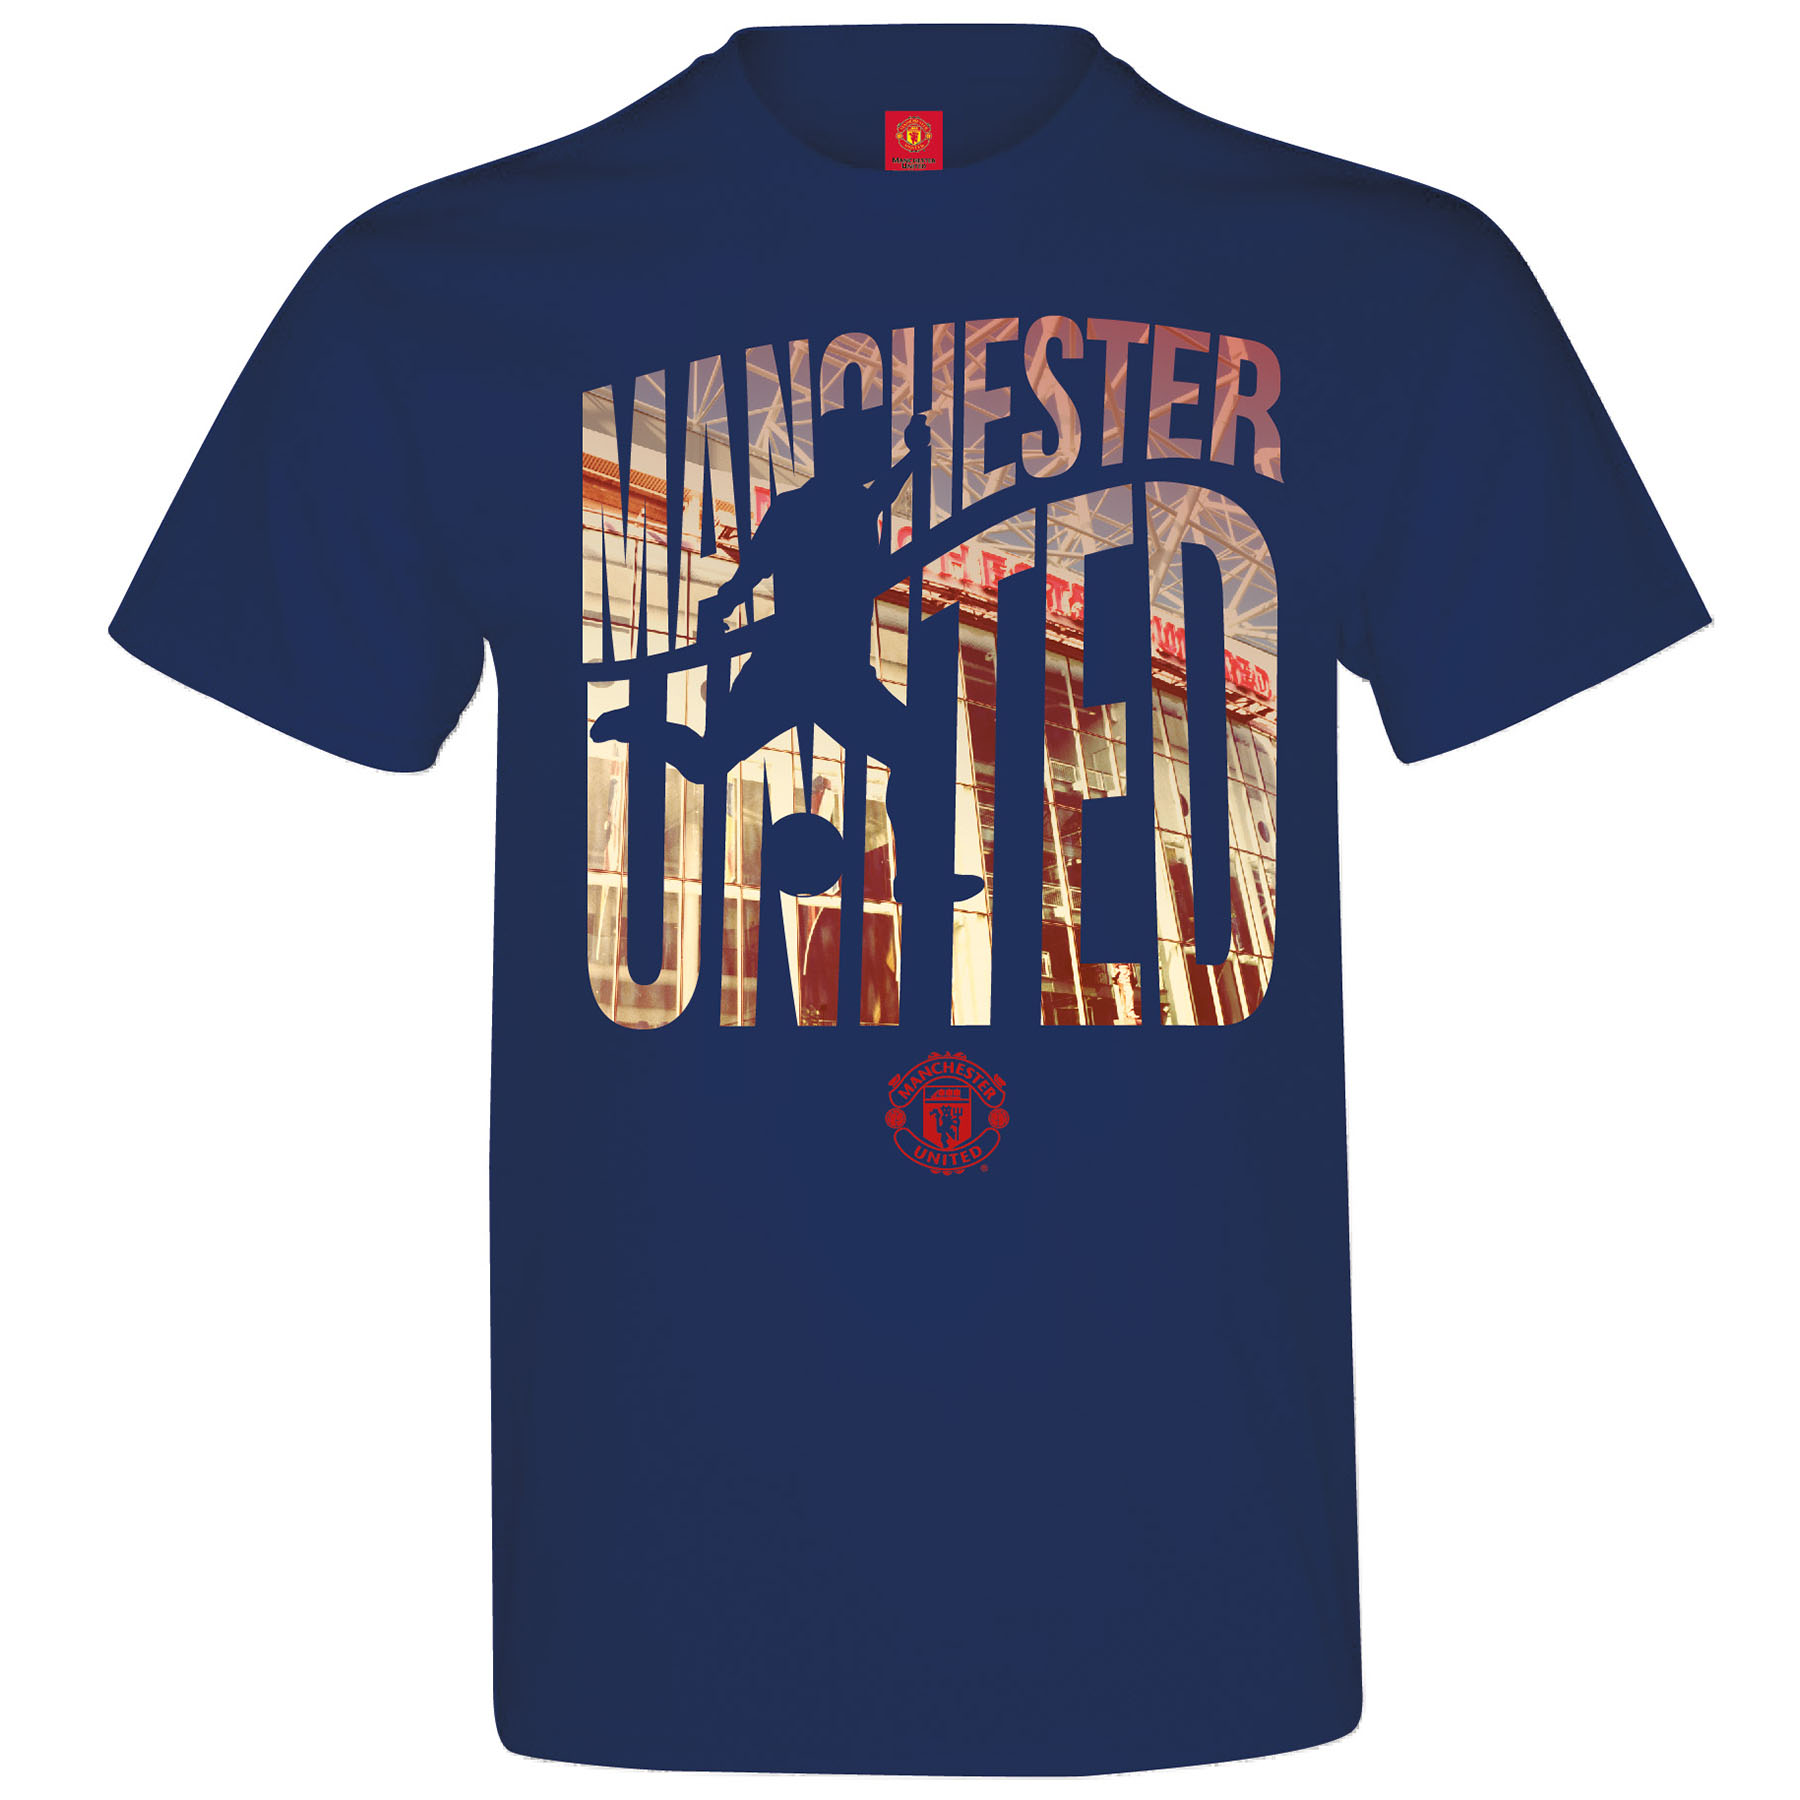 Manchester United Silhouette T-Shirt - Navy - Mens